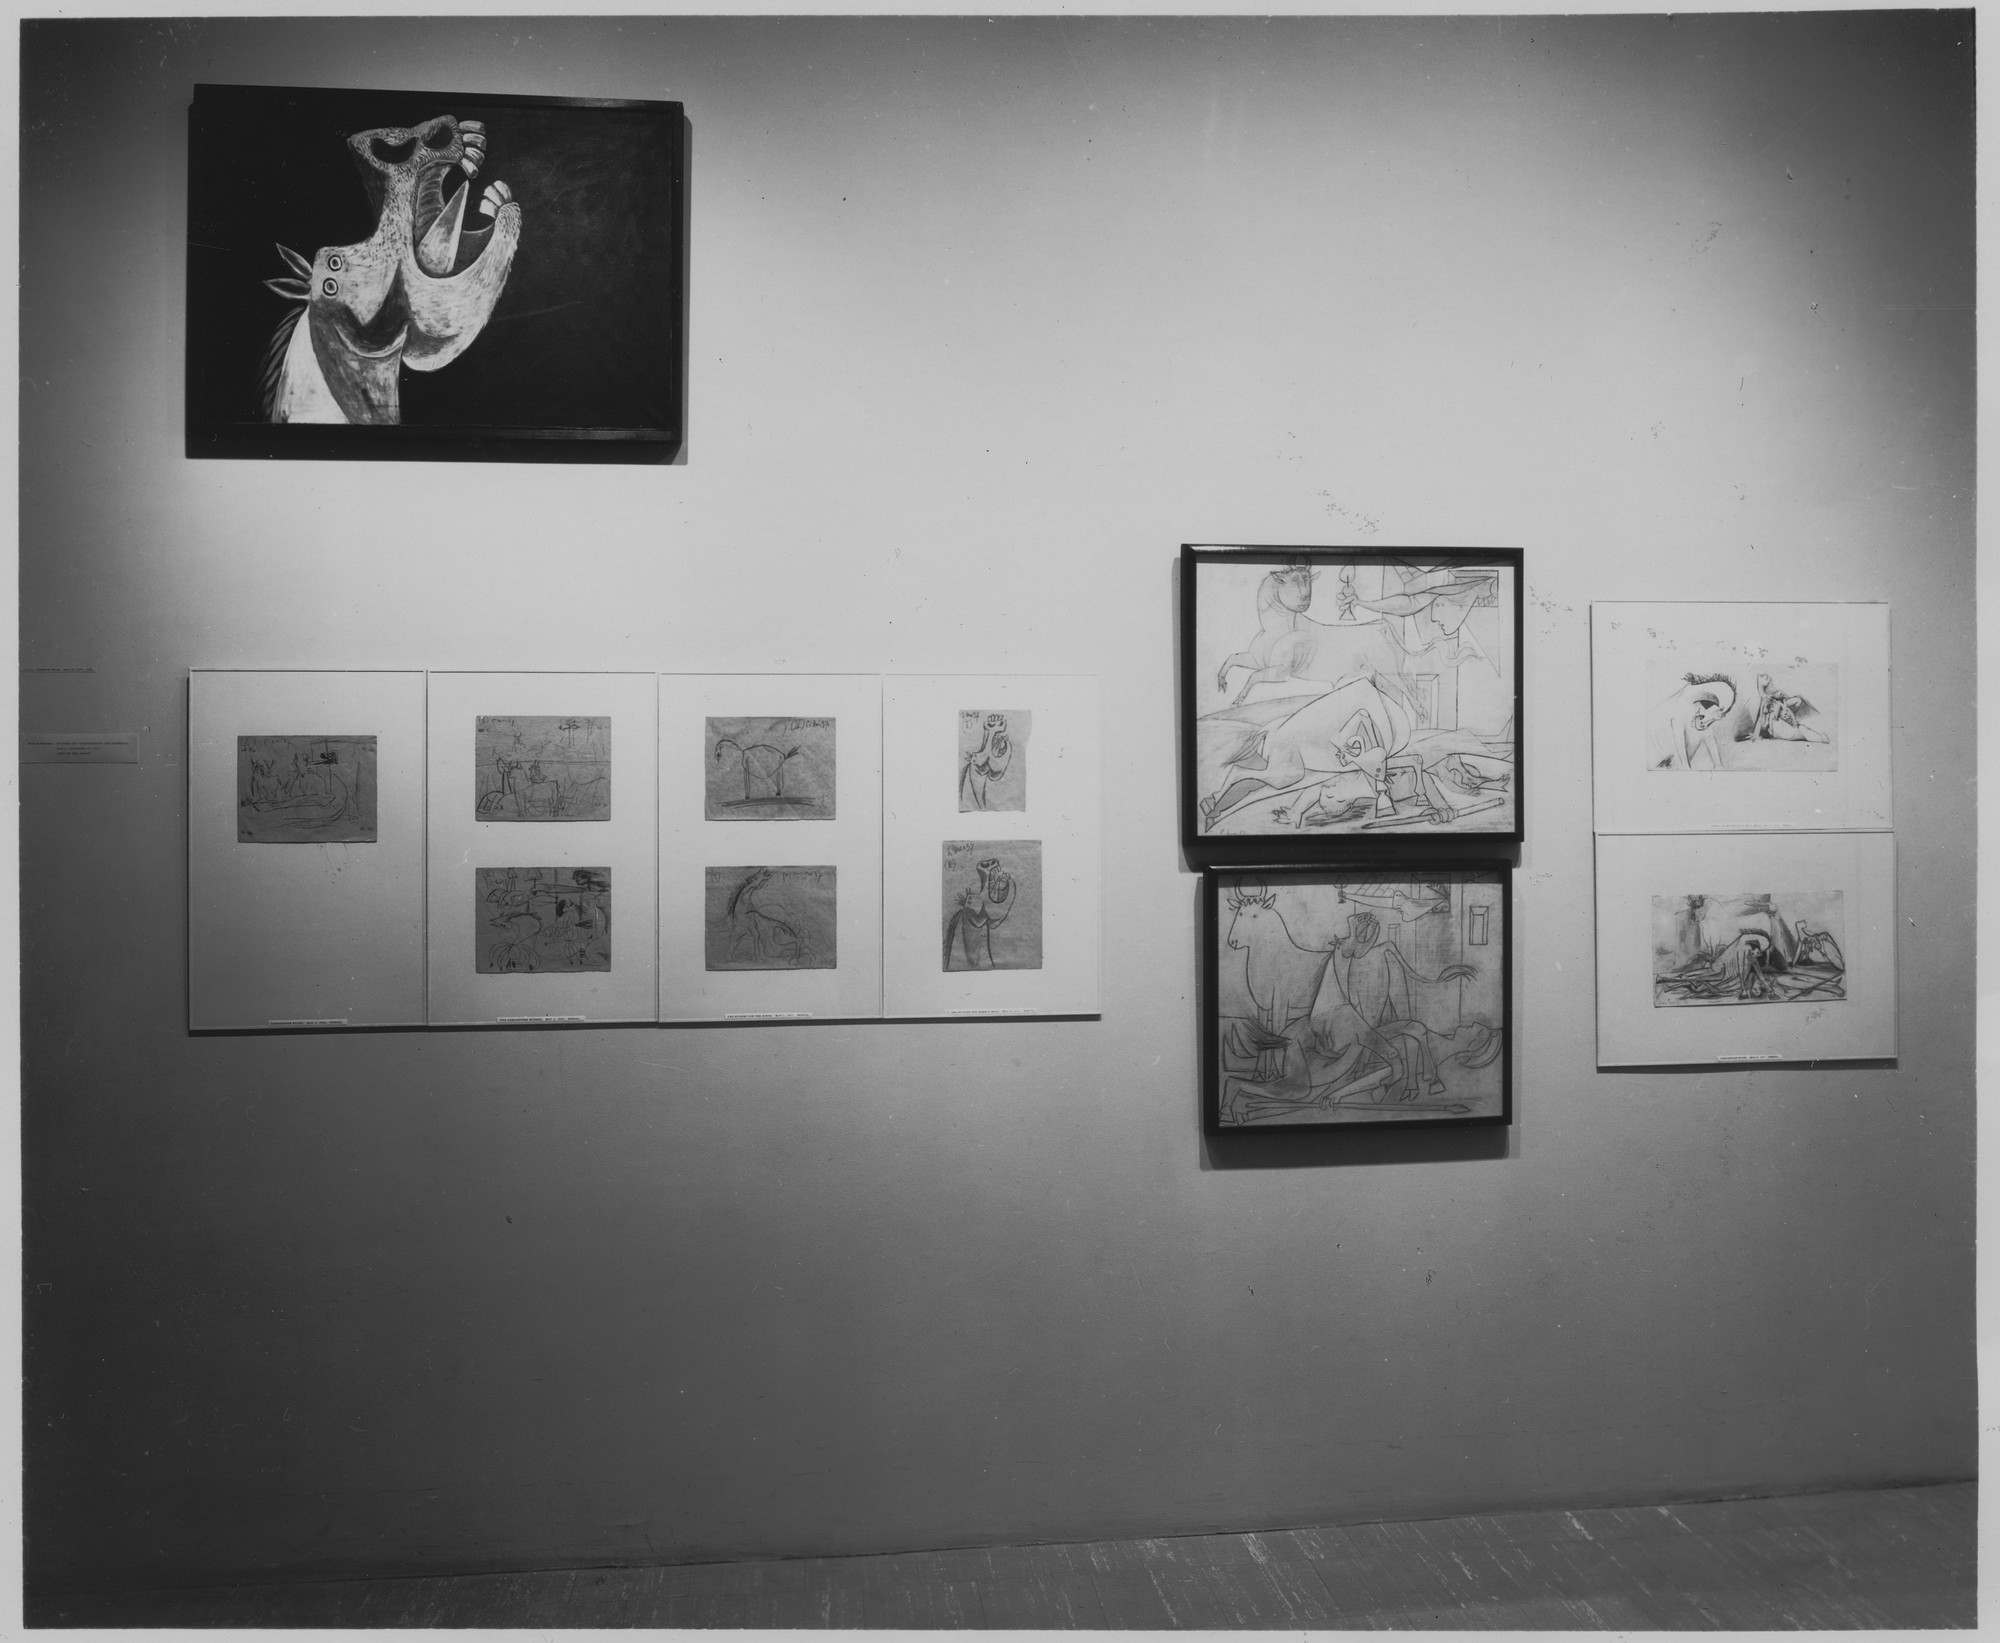 "Installation view of the exhibition, ""80th Birthday Exhibition - Picasso The Museum Collection Present and Future."" May 14, 1962–September 18, 1962. Photographic Archive. The Museum of Modern Art Archives, New York. IN705.1. Photograph by Soichi Sunami."